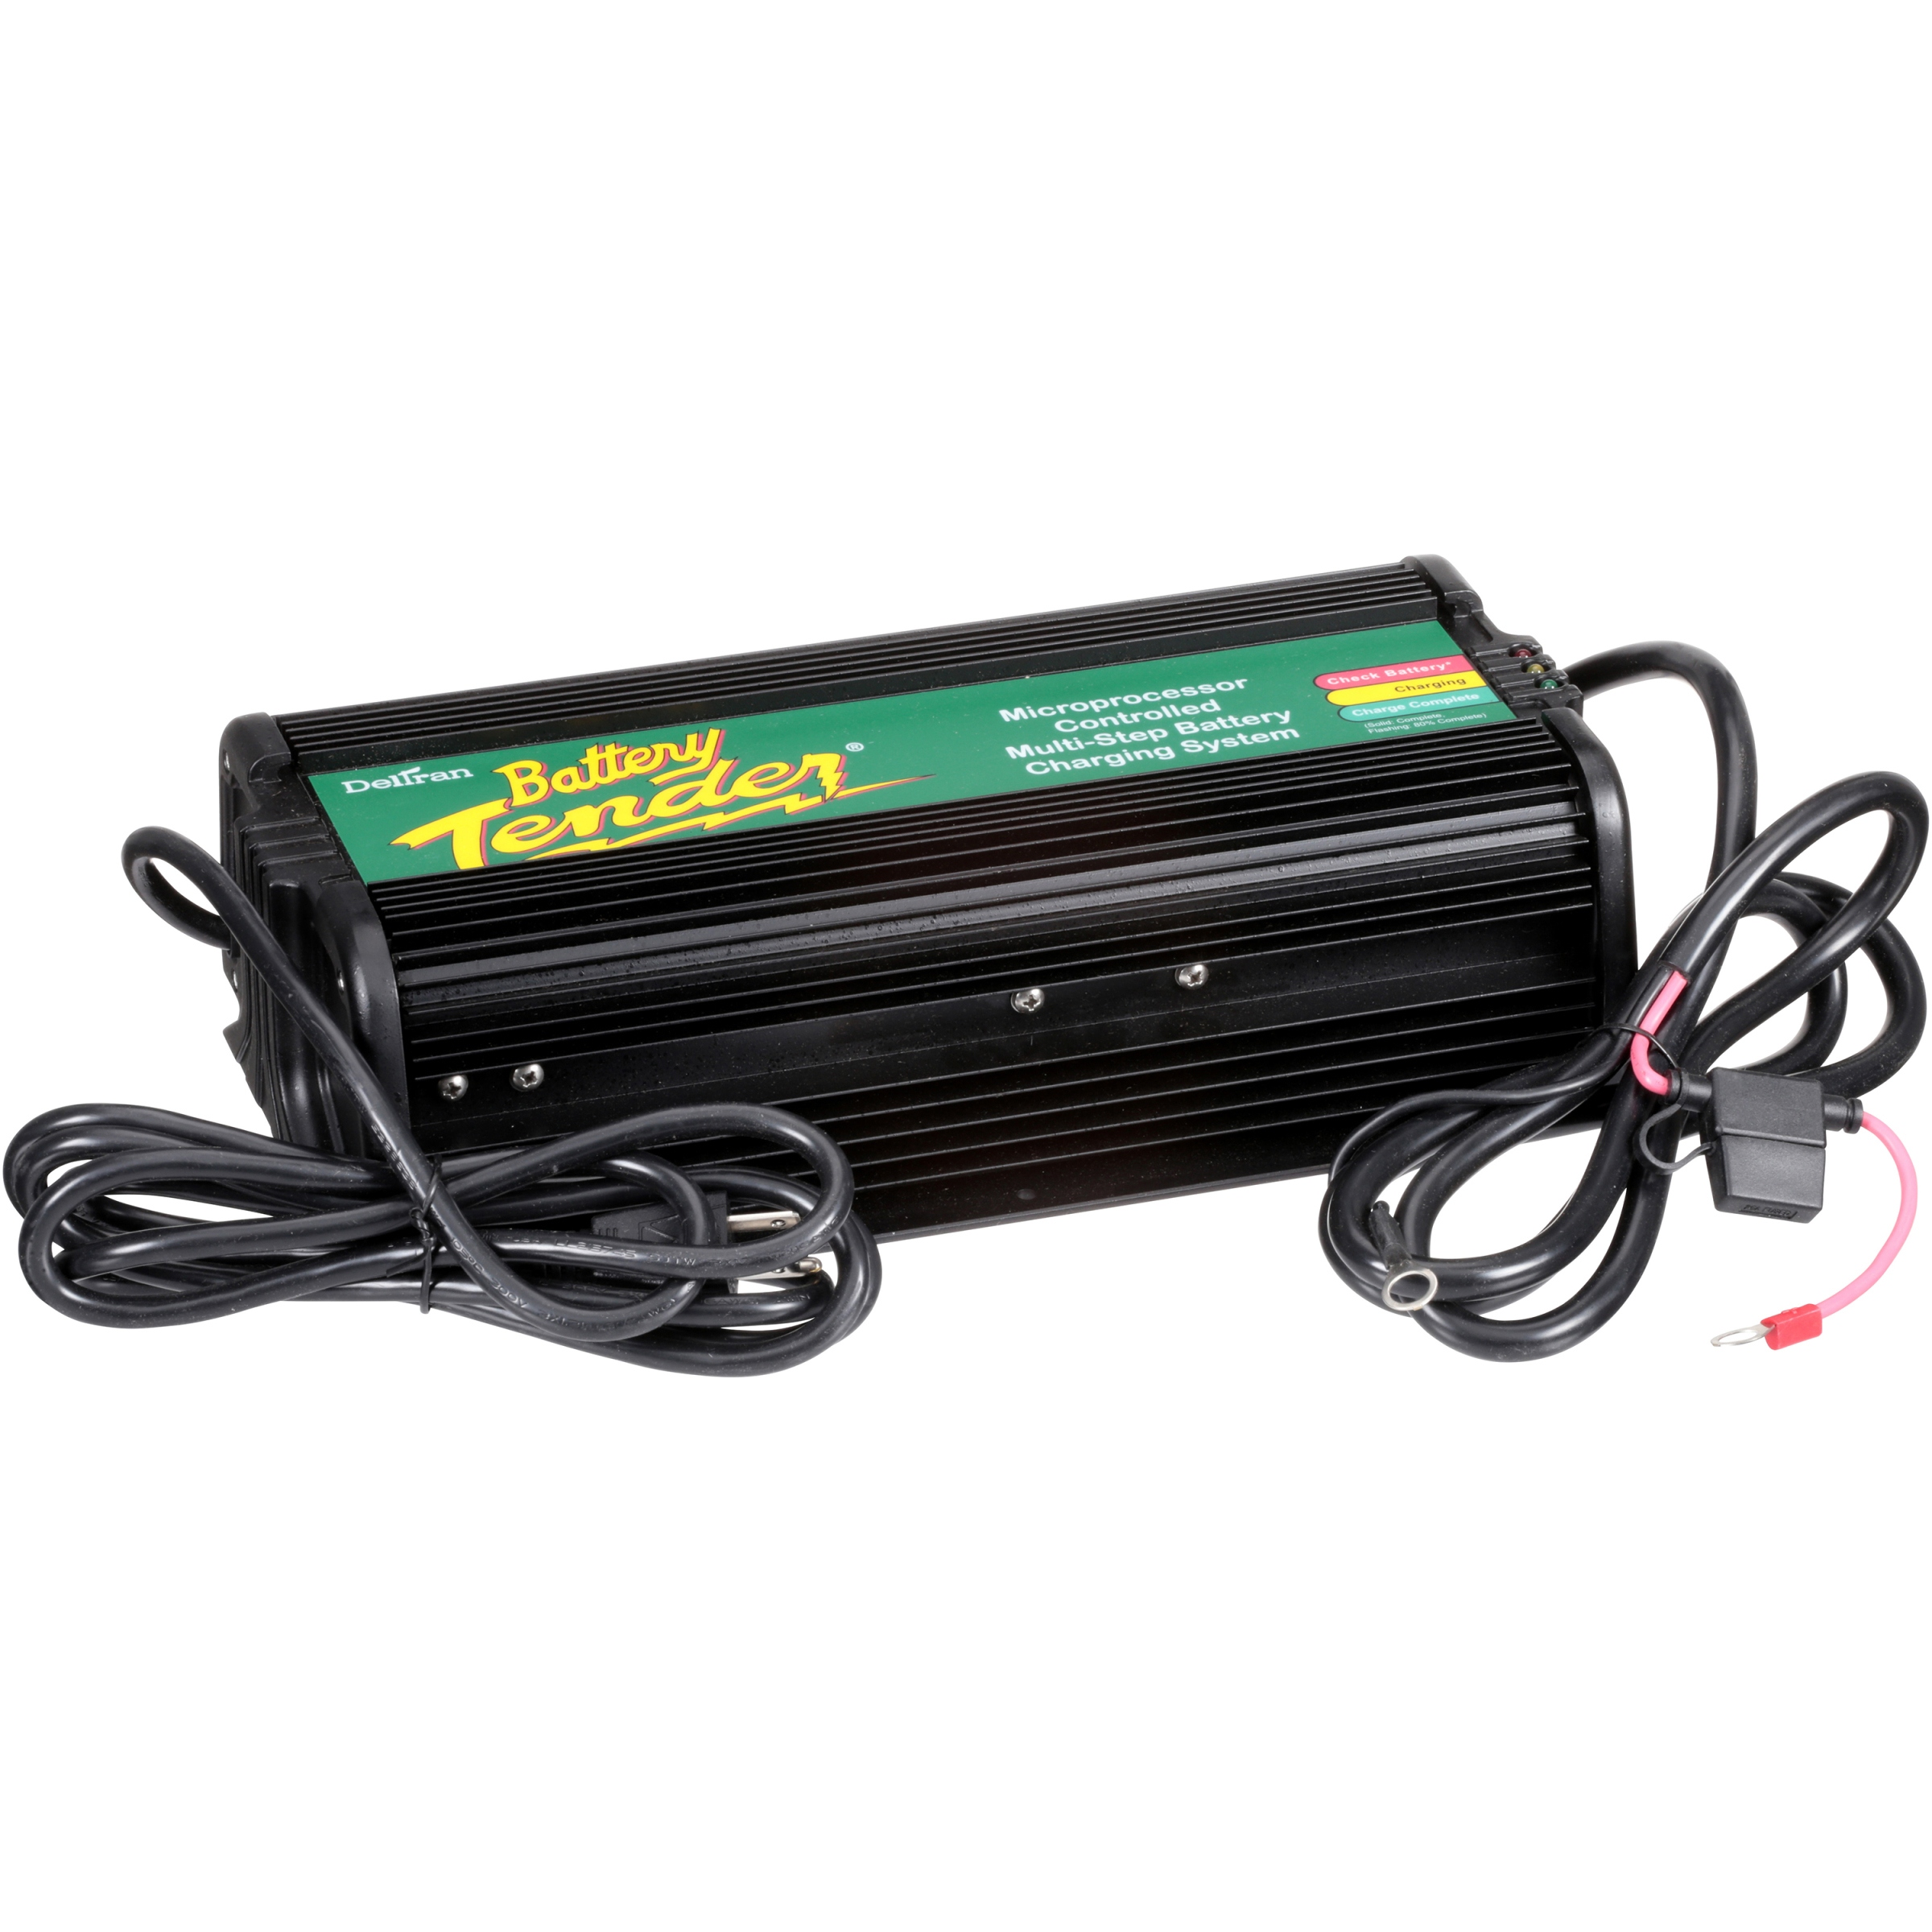 Battery Tender 48 Volt Golf Cart Charger